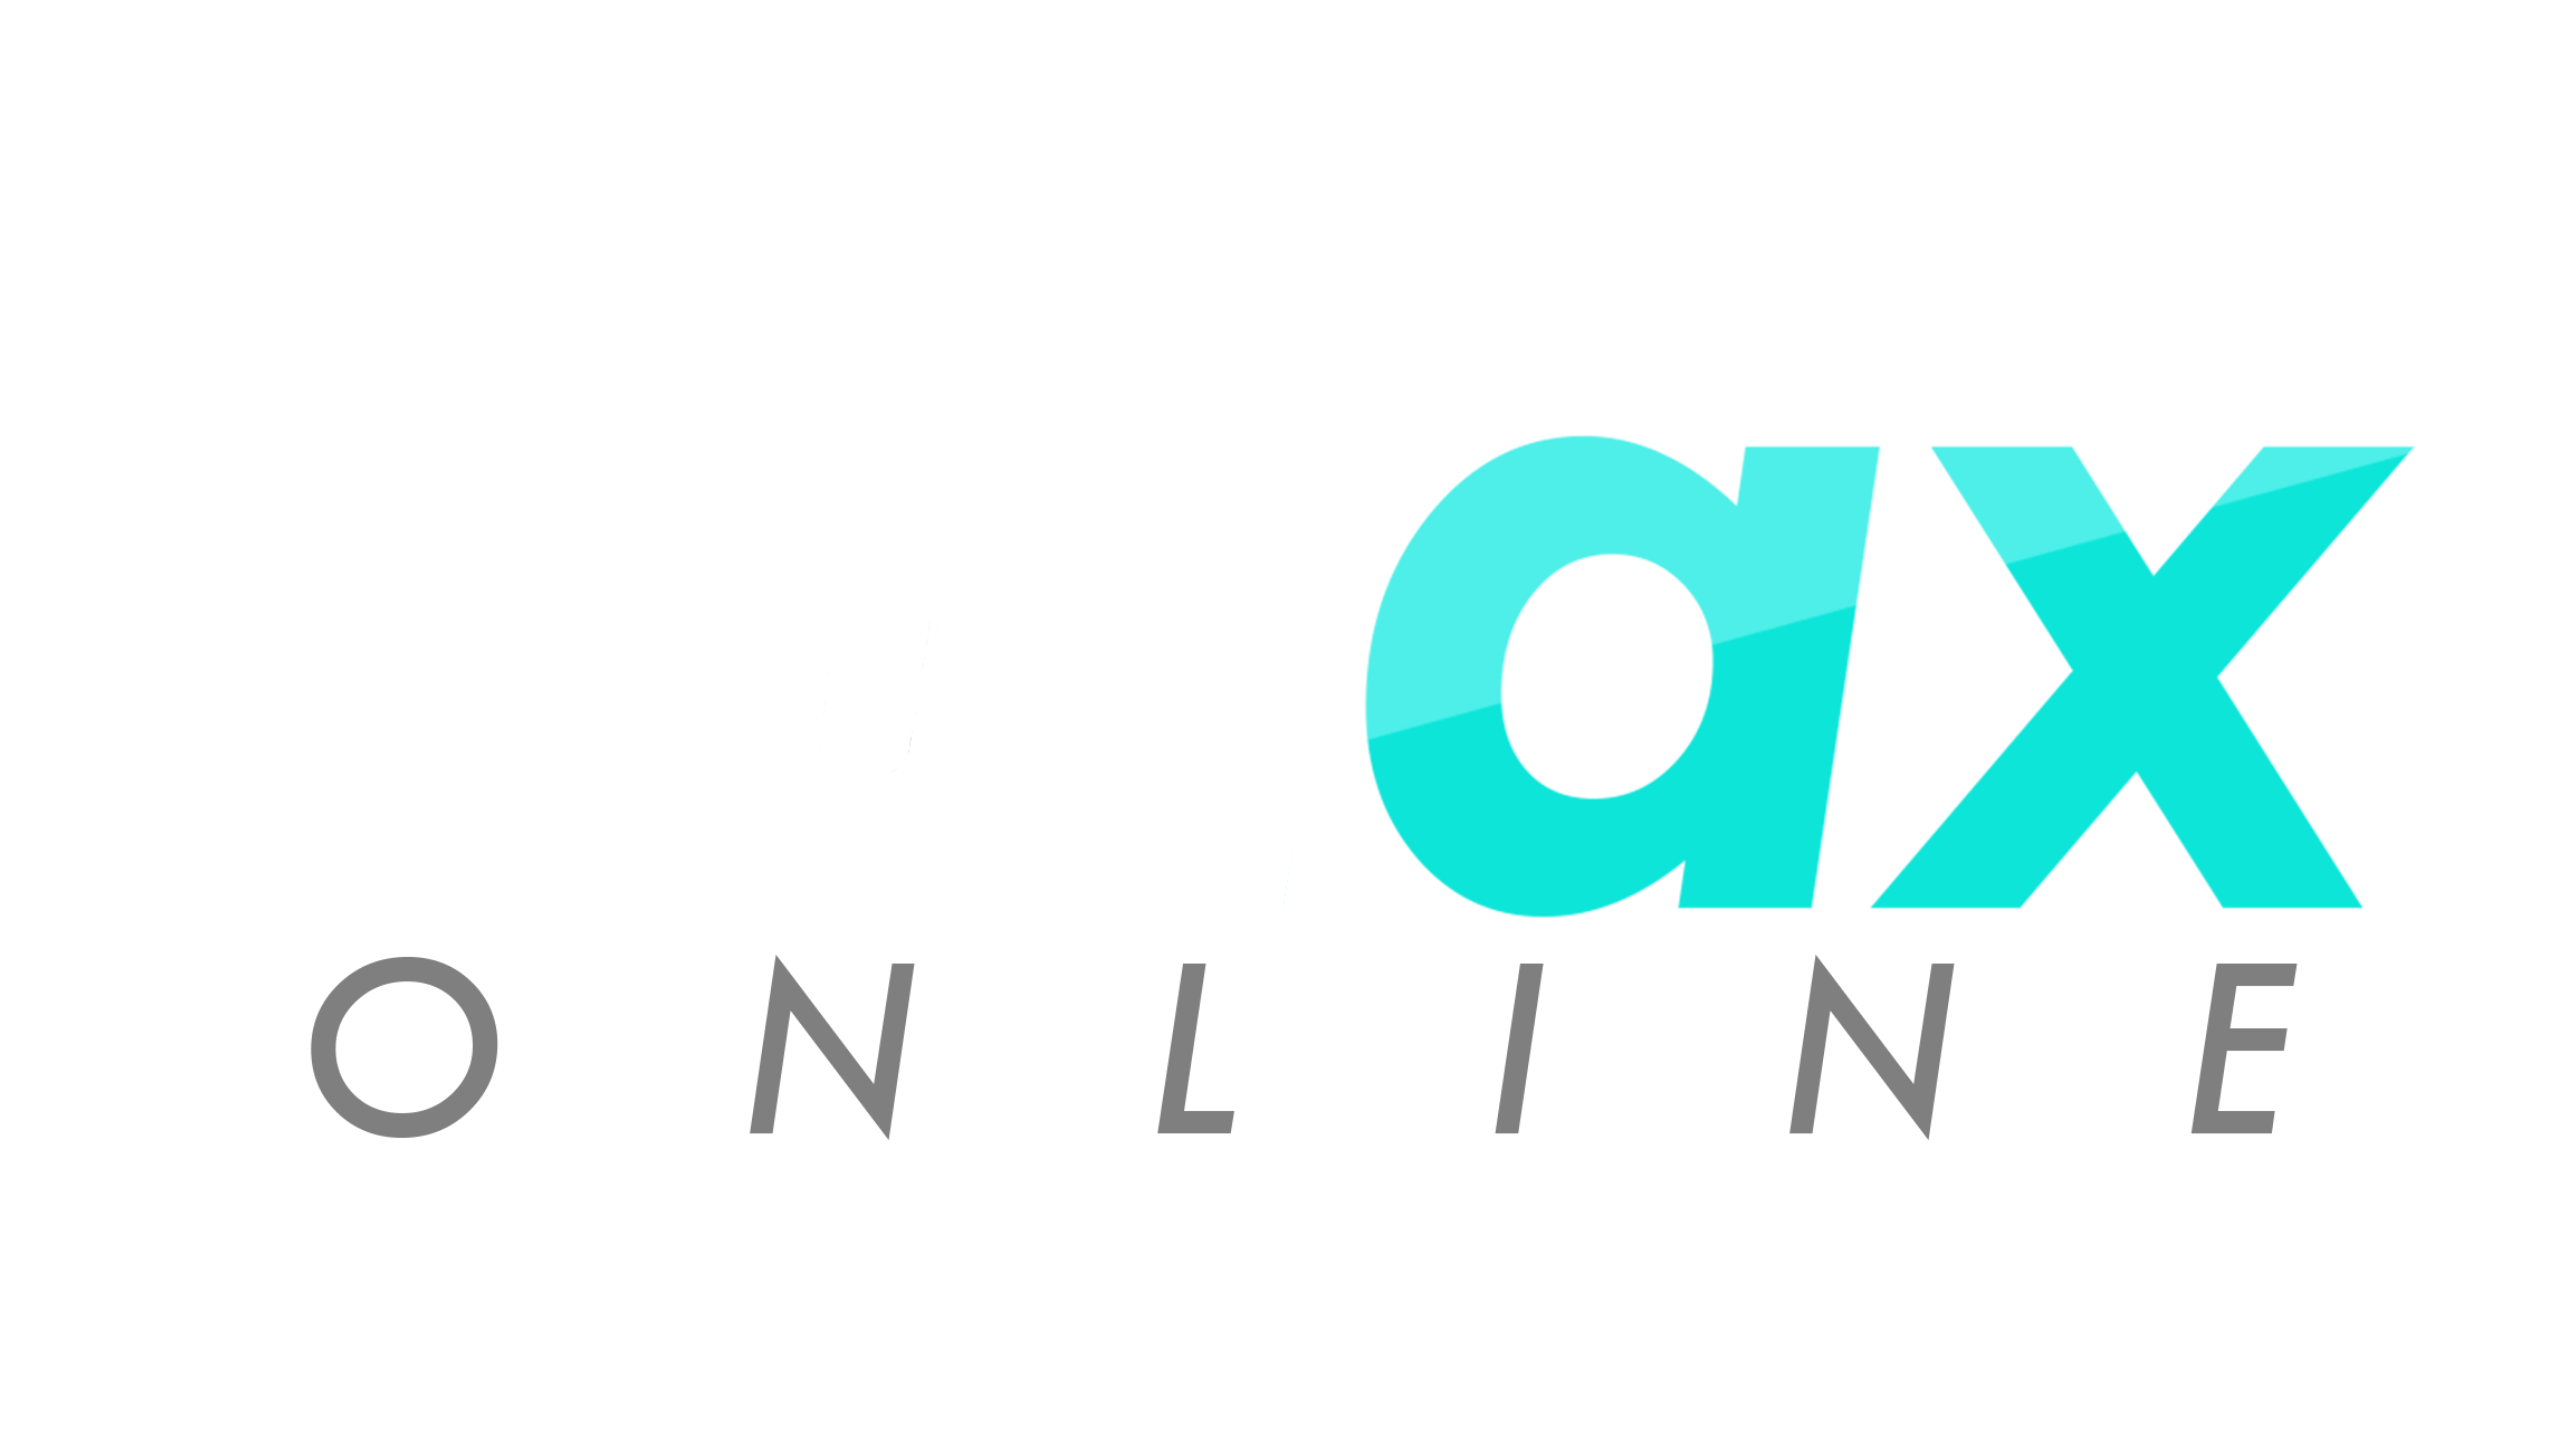 Pinax News - Latest News, Showbiz, Politics, Lifestyle, Sports.